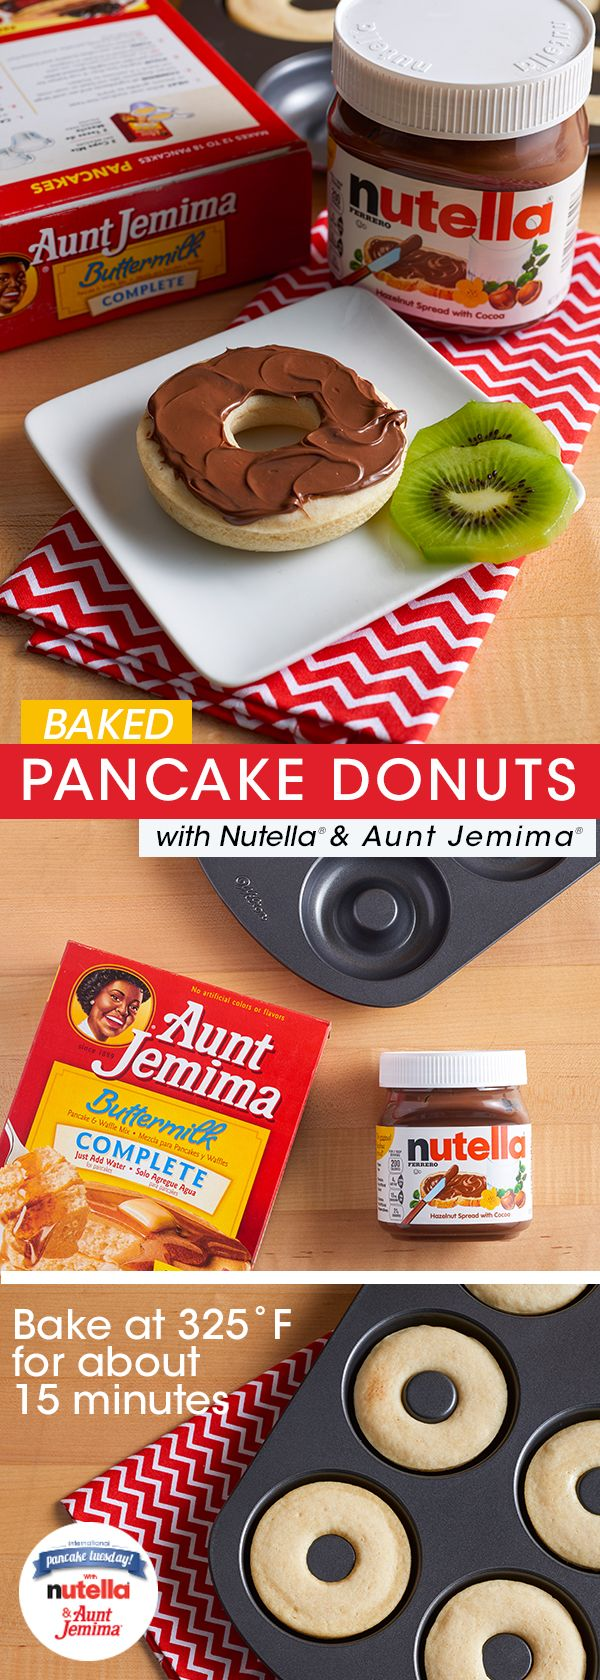 You read right – baked pancake donuts with Nutella® AND they're super easy to make. Whip up a batch of Aunt Jemima® pancake batter and pour into a donut hole pan. Bake at 325˚F for 15 min or until cooked through. Let cool, spread with Nutella and serve. We know: MIND. BLOWN.